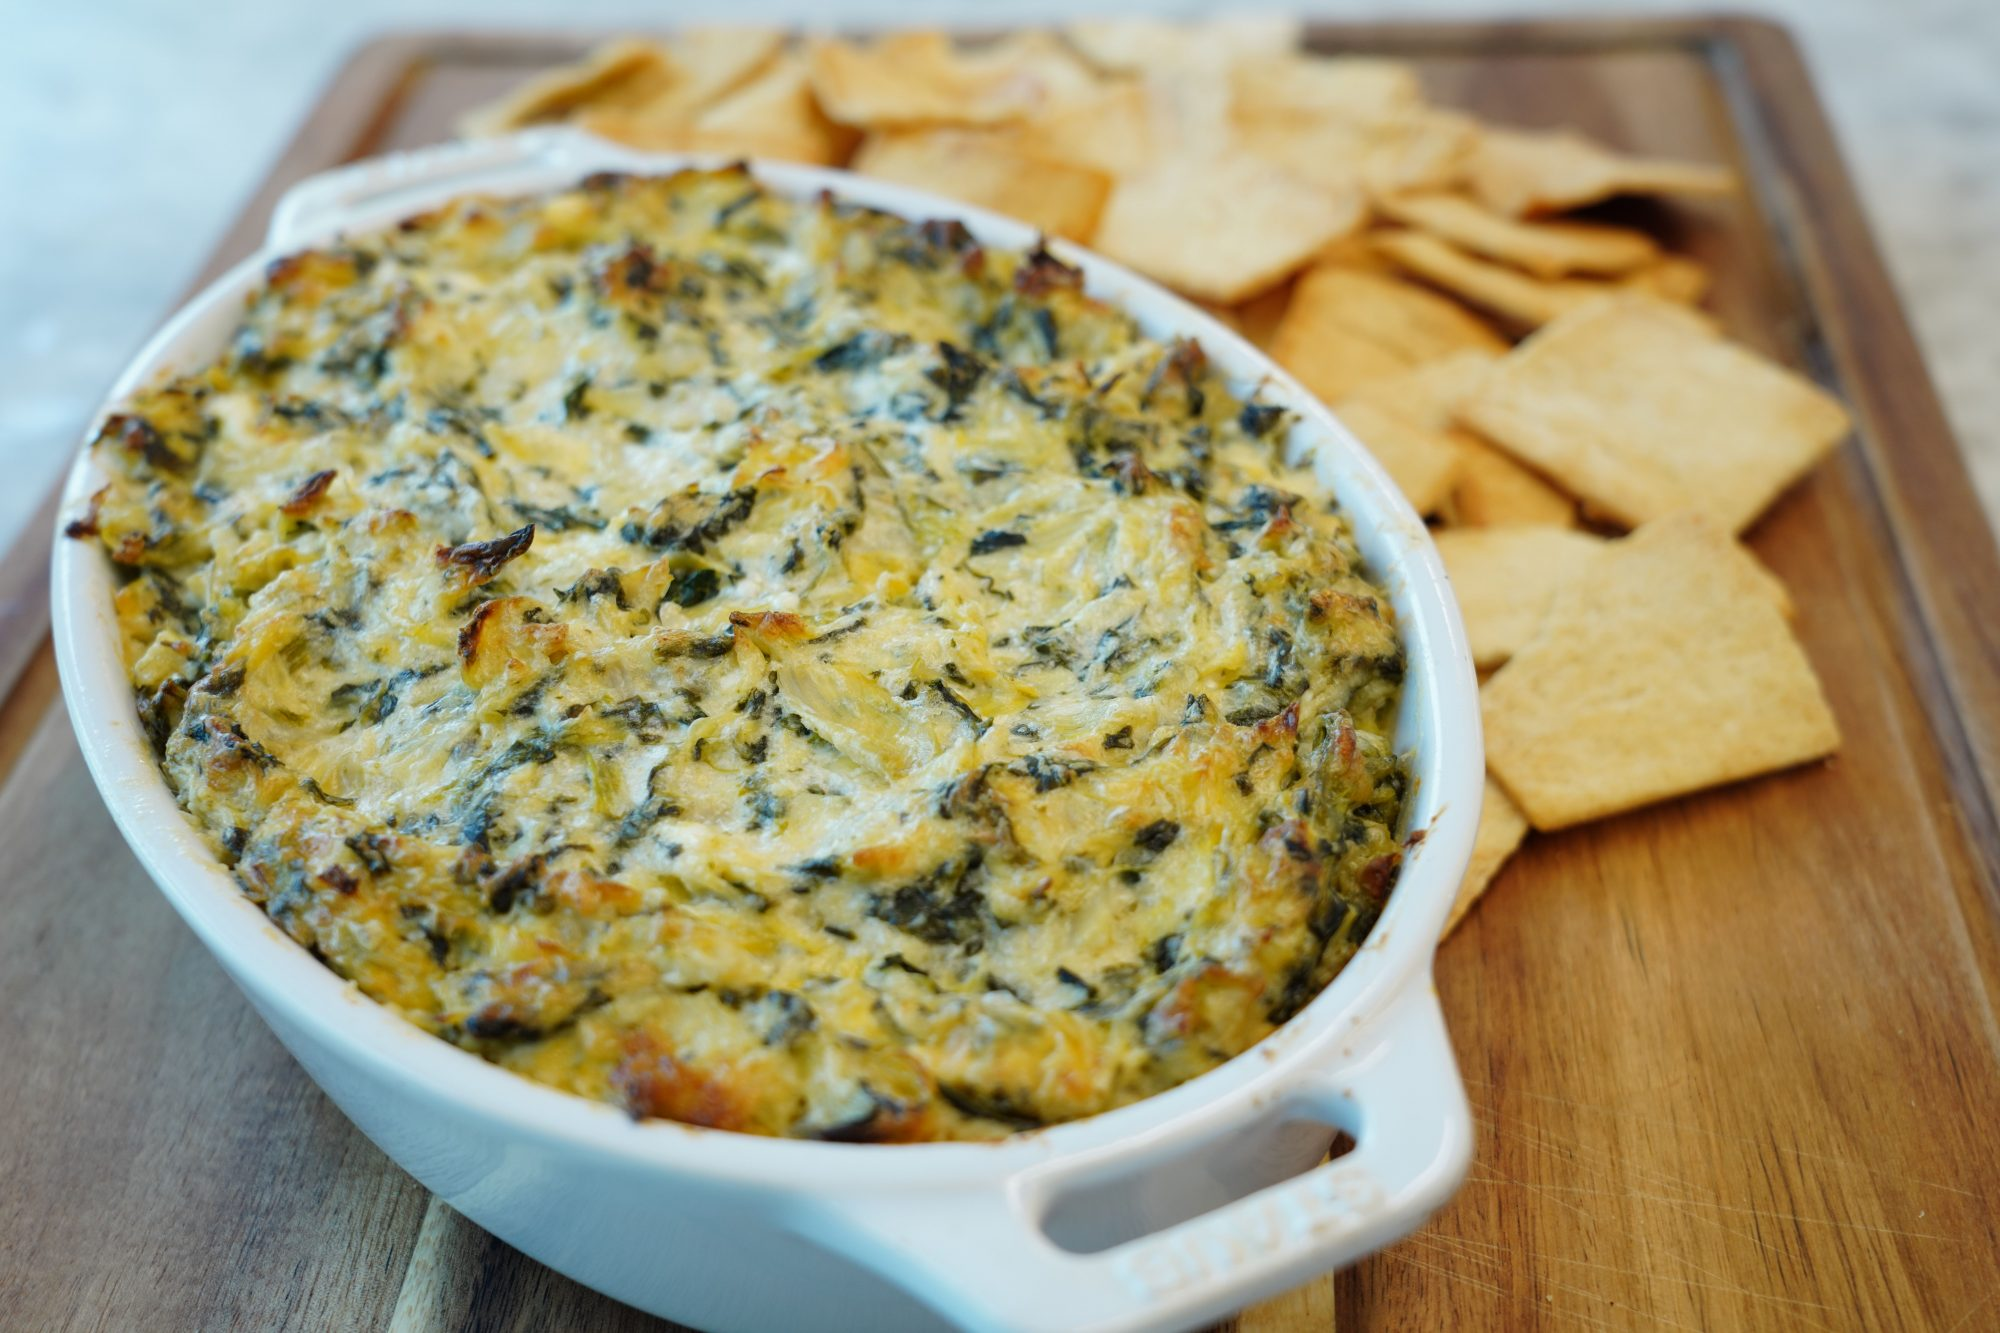 Baking dish filled with homemade Luscious Spinach Artichoke Dip recipe served with pita chips